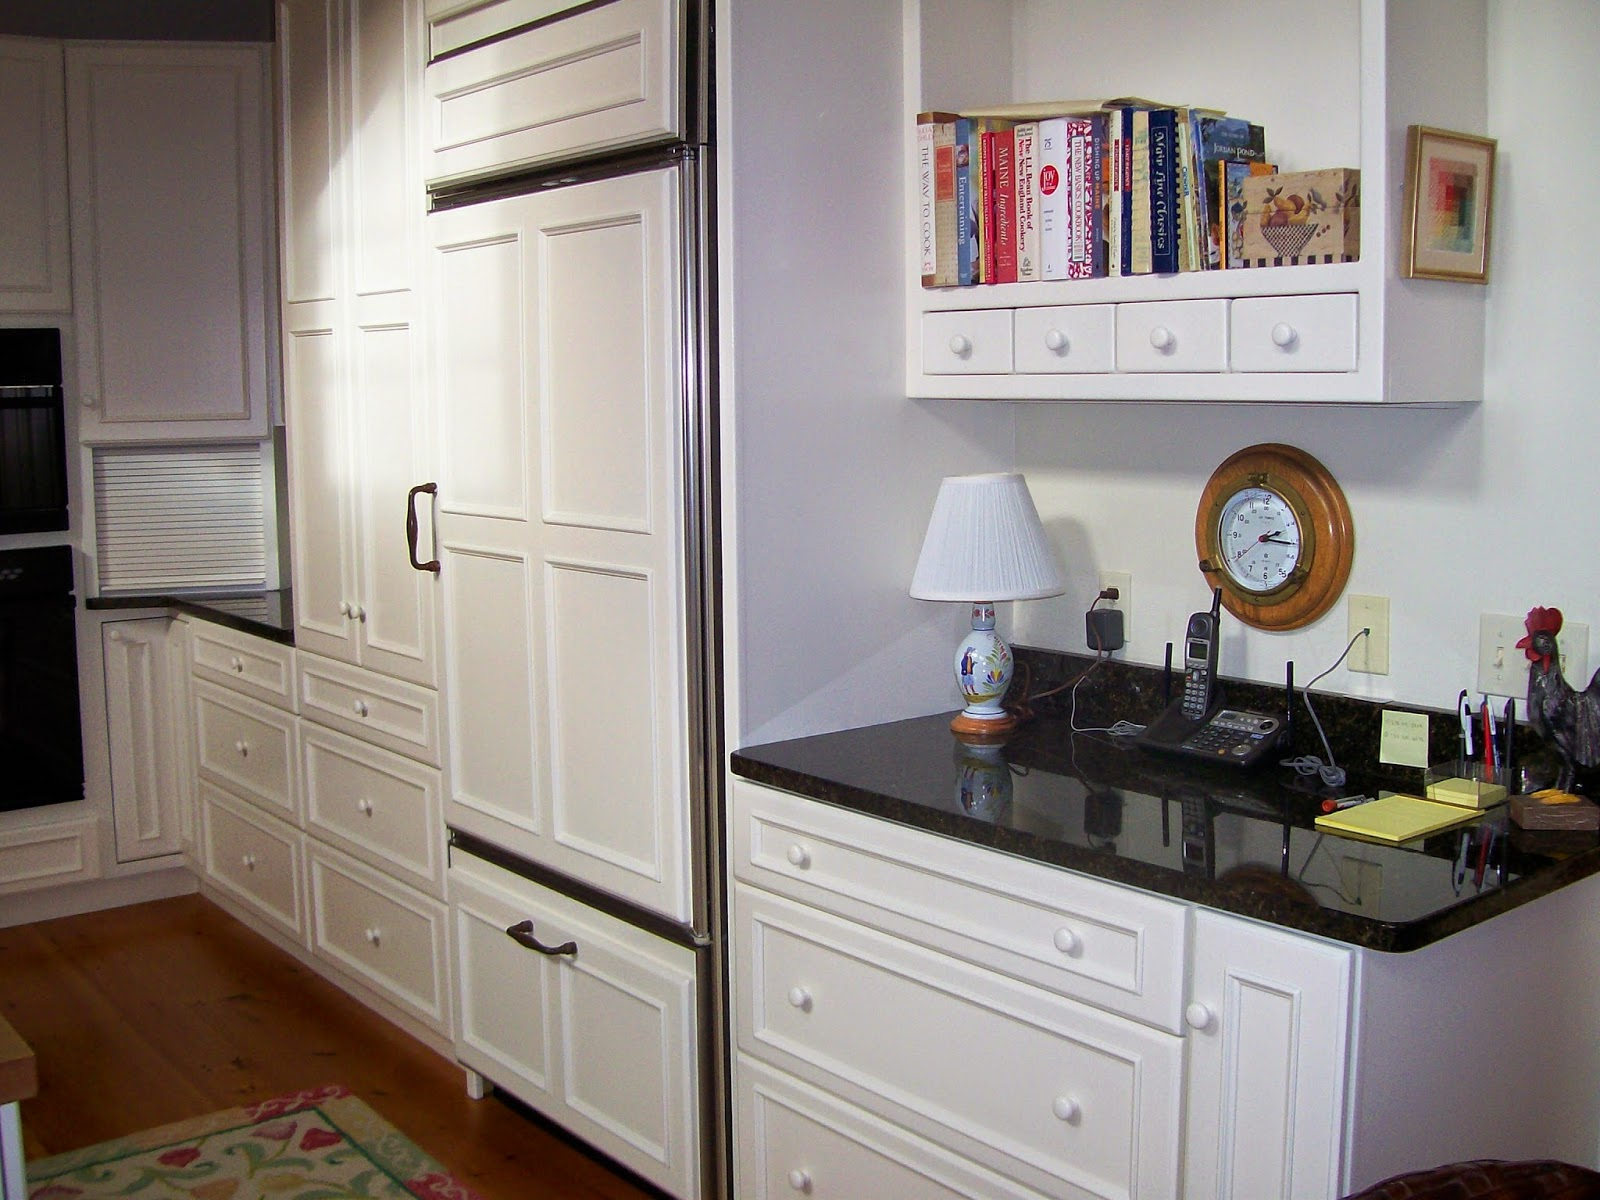 North atlantic painting news tips how to save big for Can kitchen cabinets be repainted